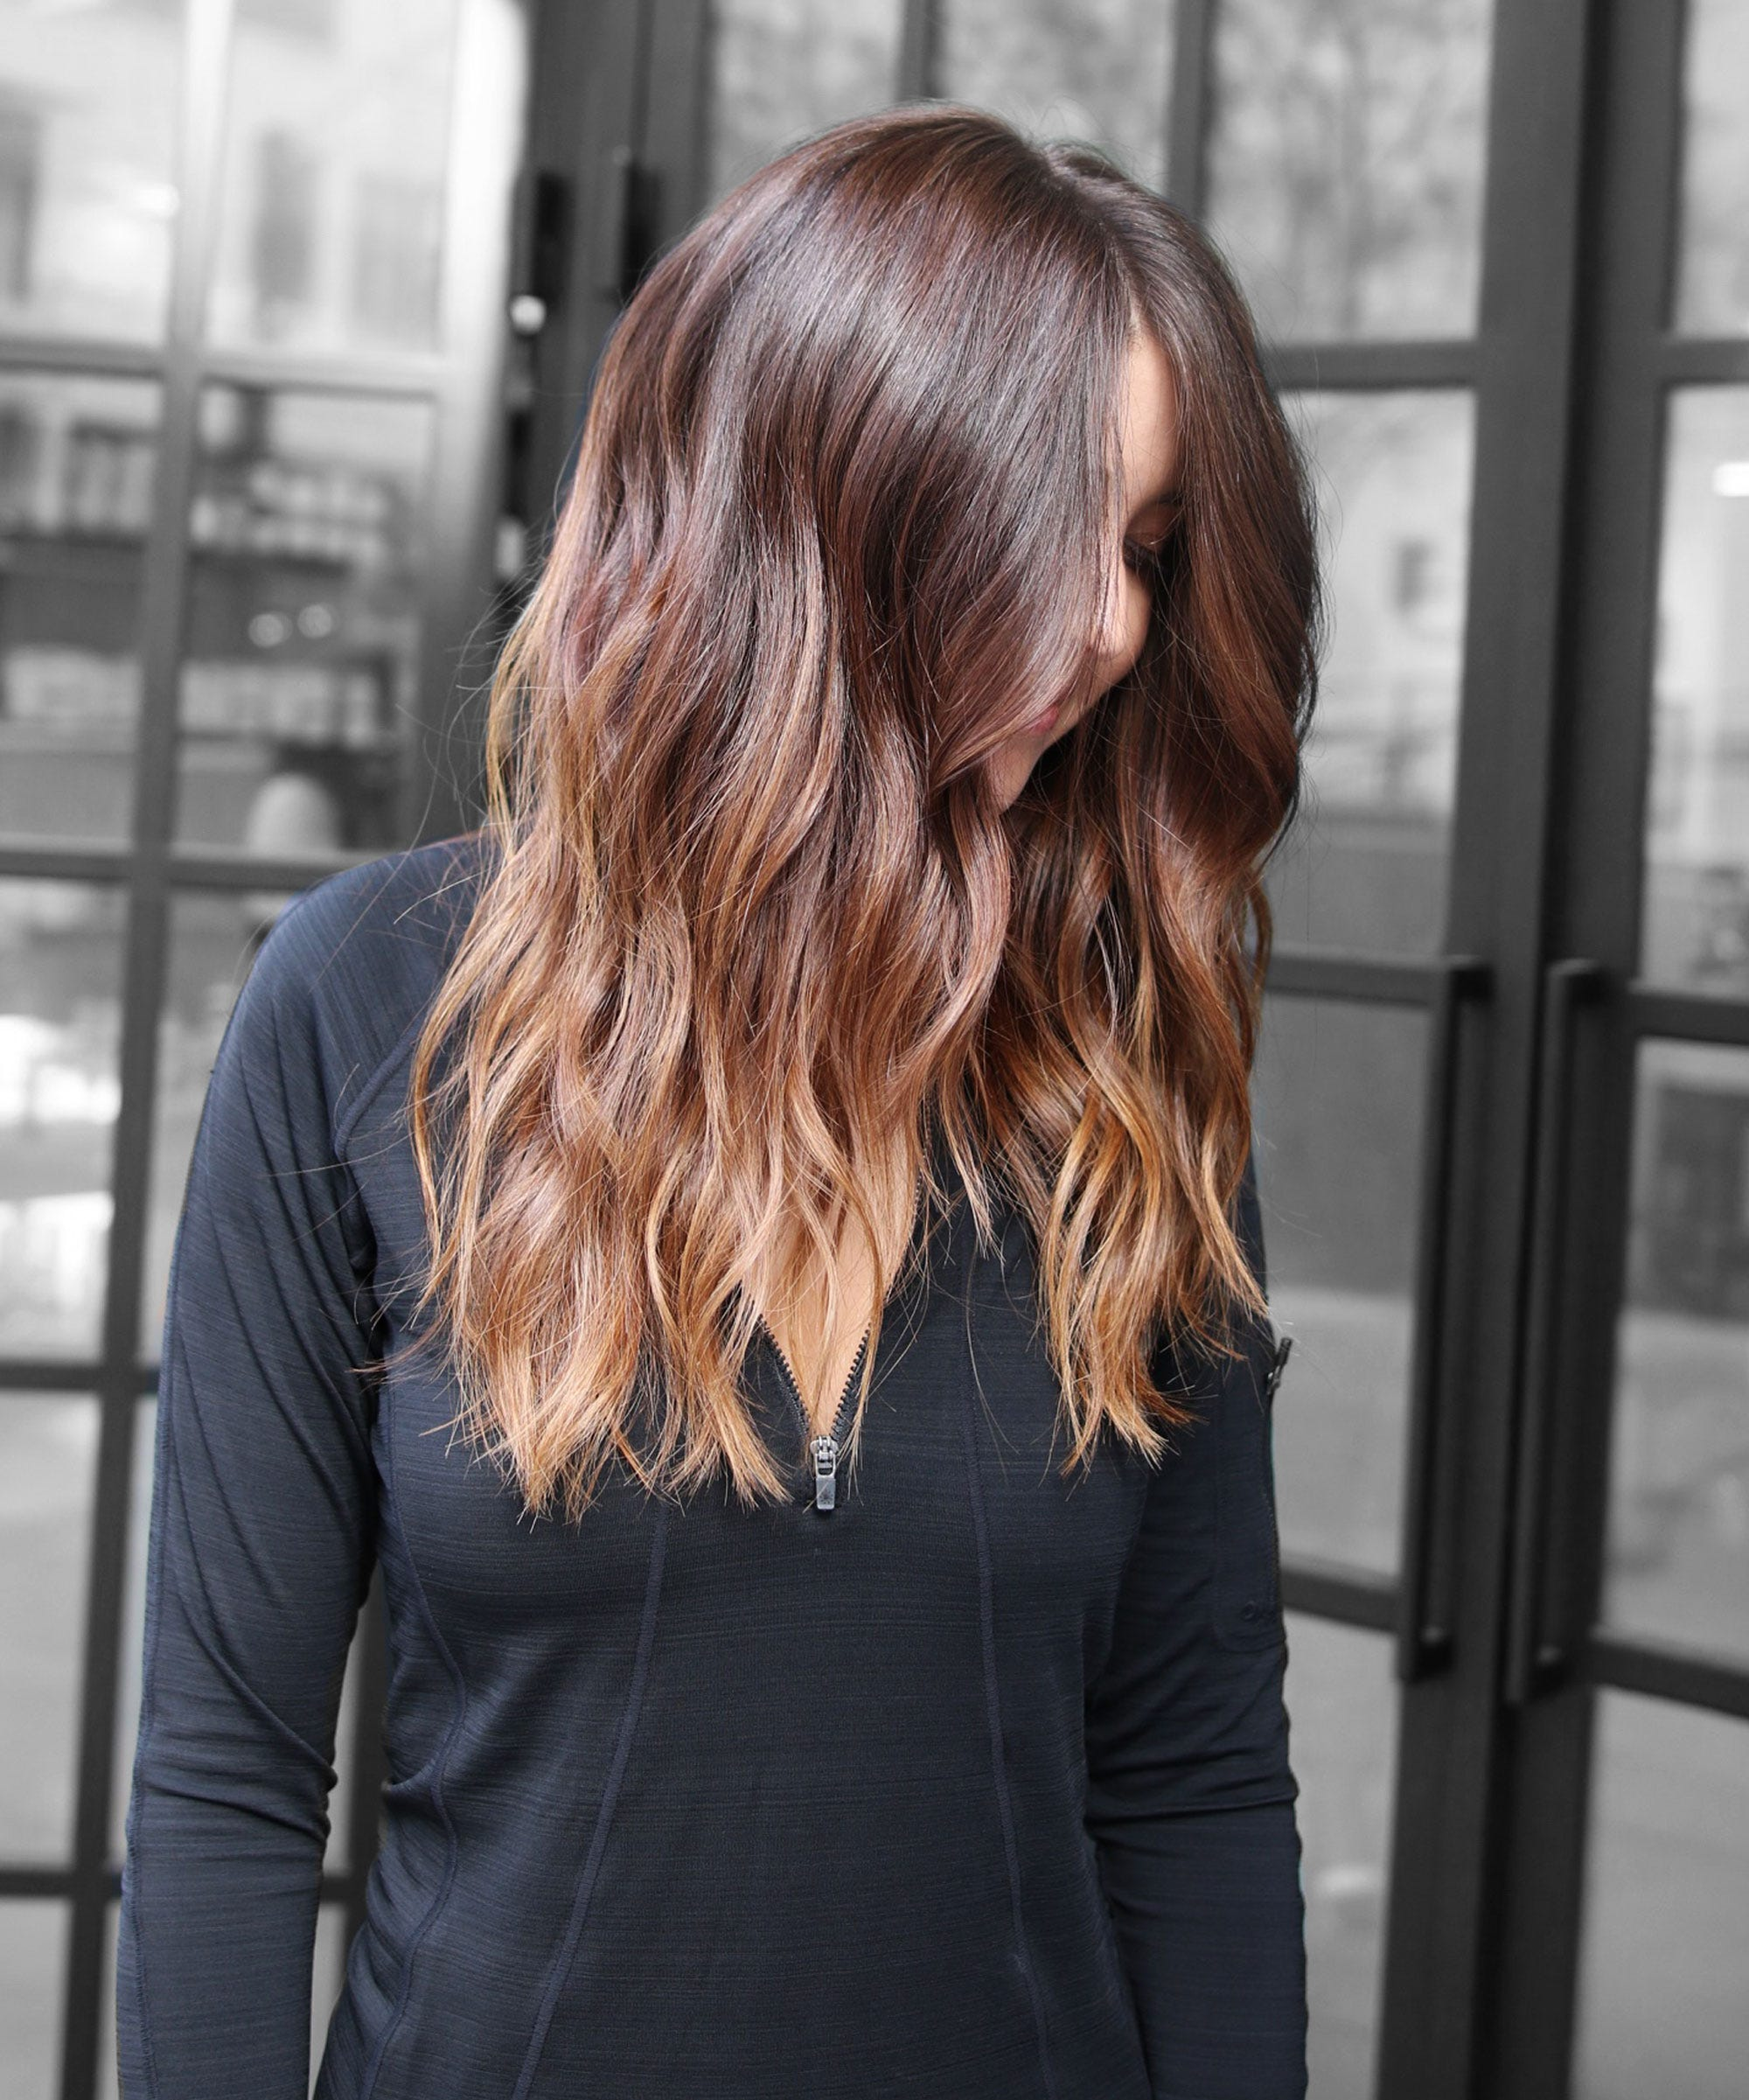 Hair Color Trends Summer Hairstyles - Hairstyle colour photo